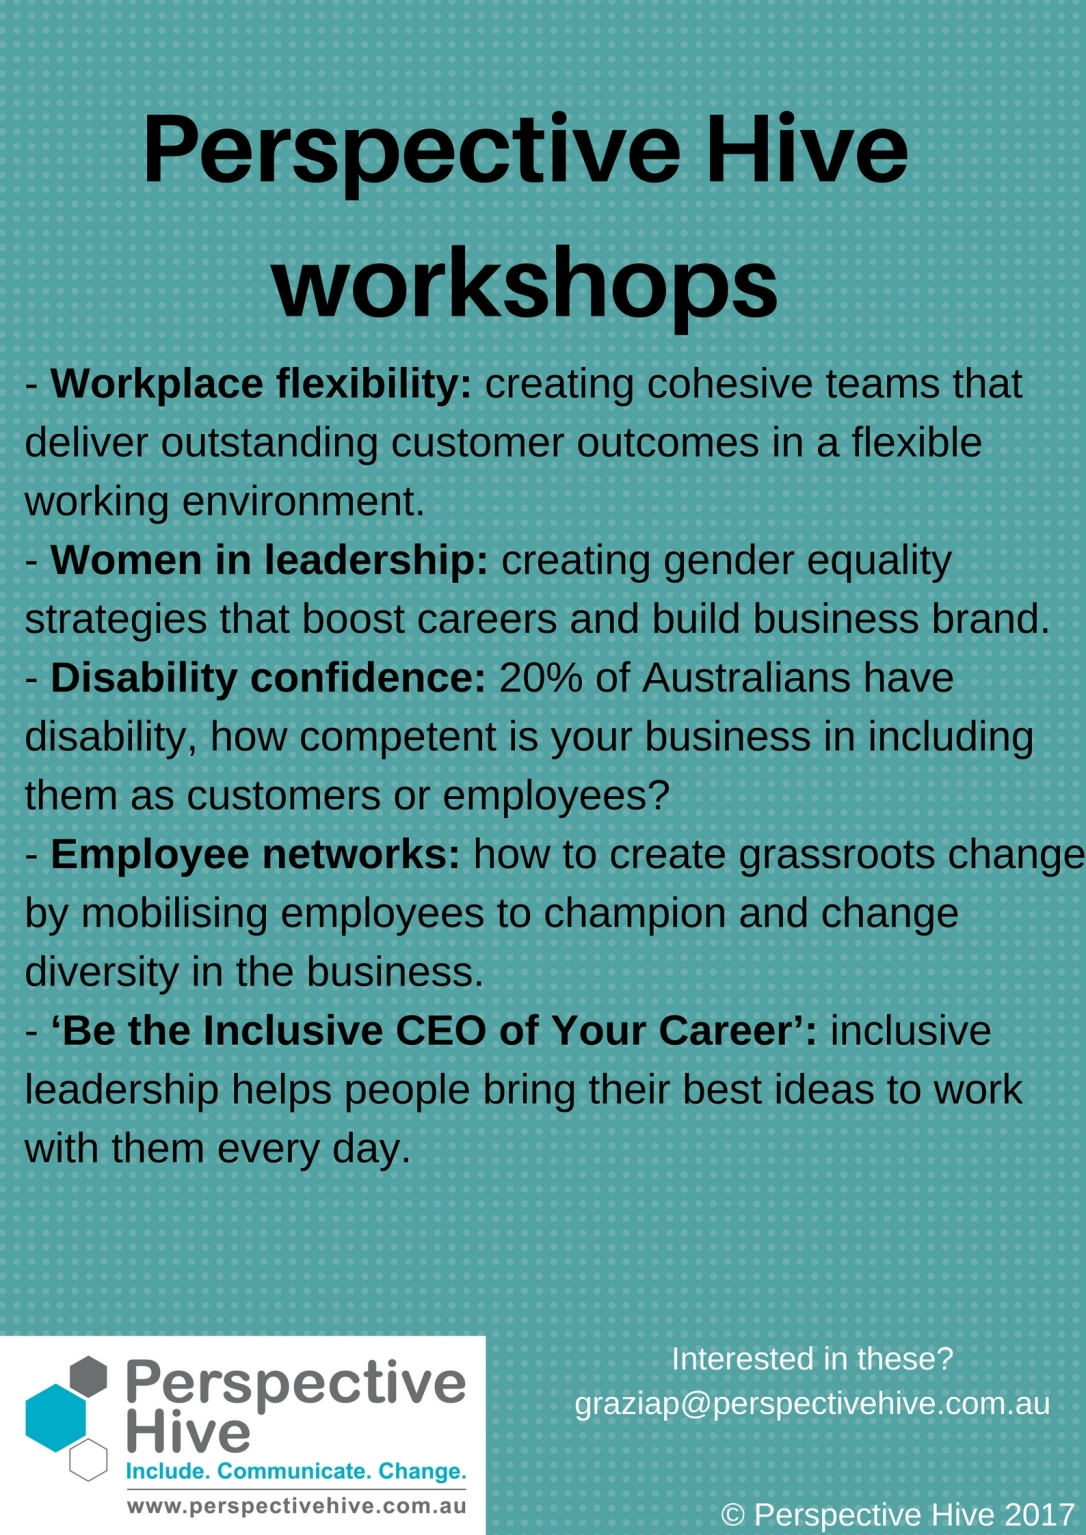 Workshops list: workplace flexibility, women in leadership, disability confidence, employee networks and 'be the inclusive CEO of your career